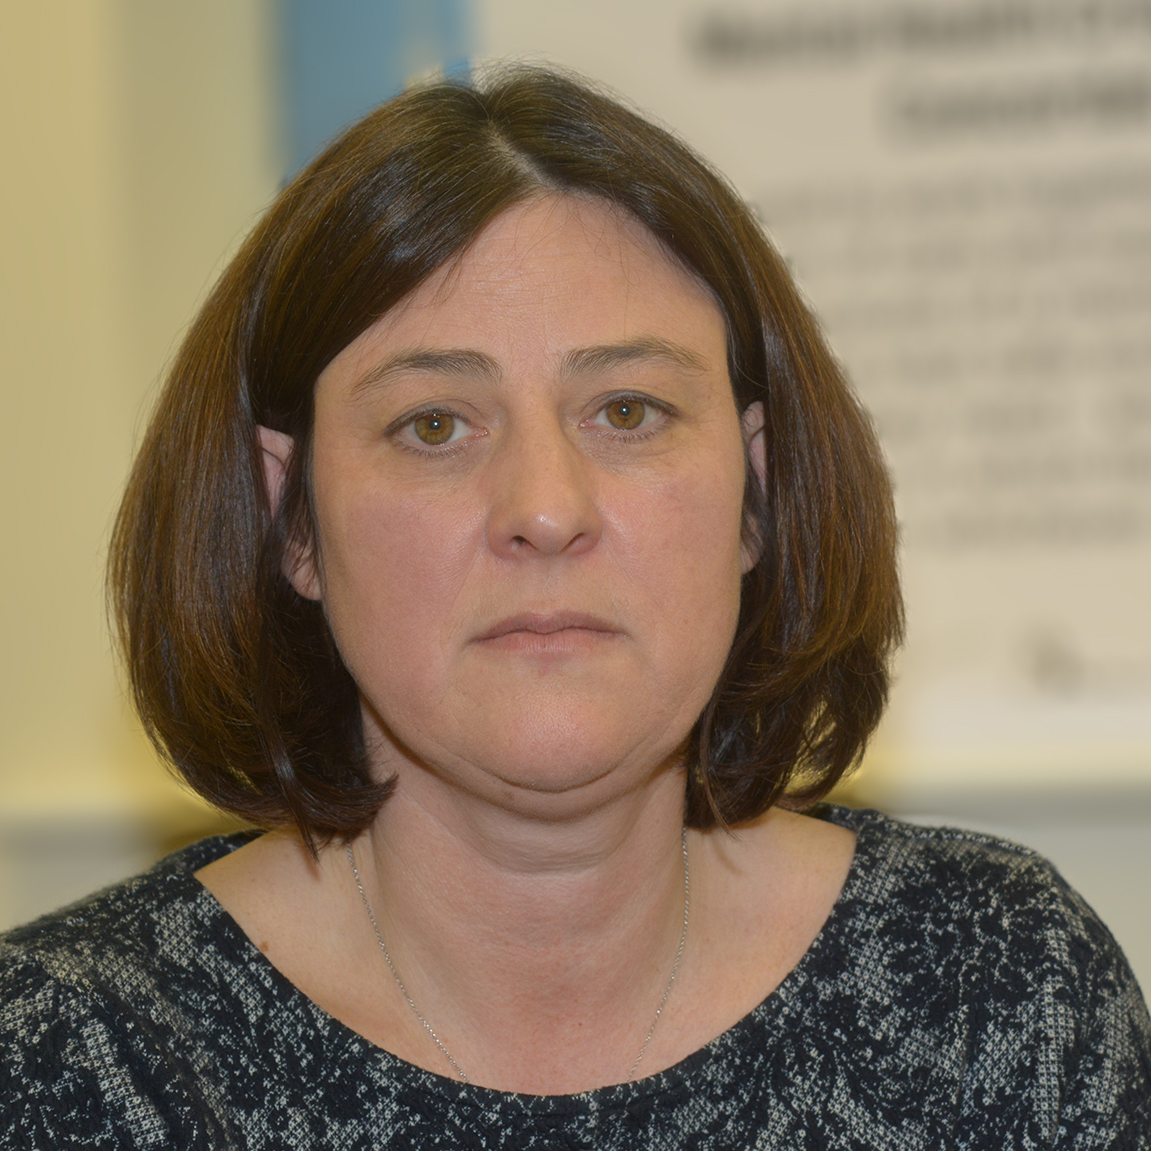 police-and-crime-commissioner-julia-mulligan-2